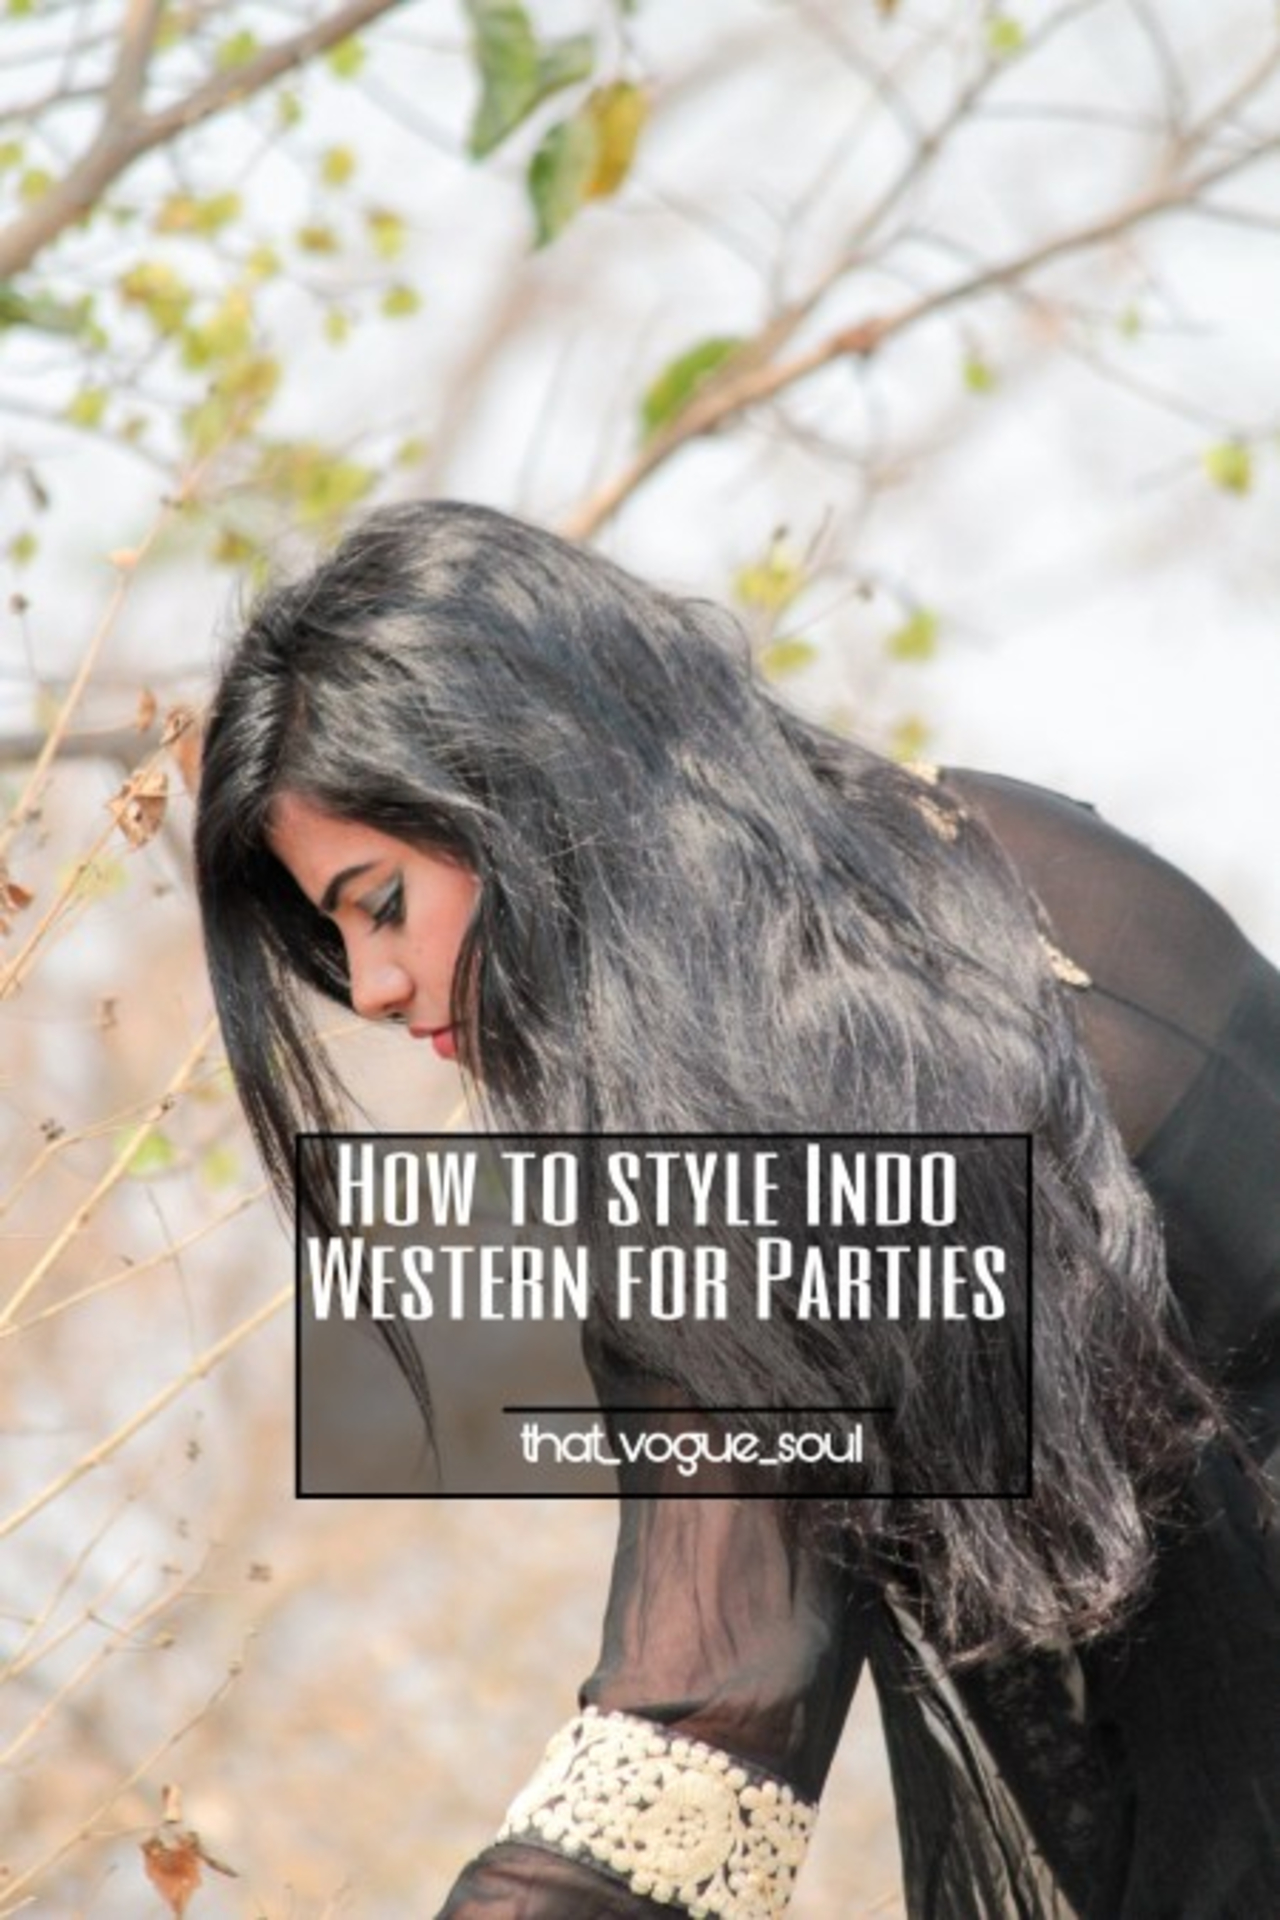 HOW TO STYLE INDO WESTERN FOR PARTIES image